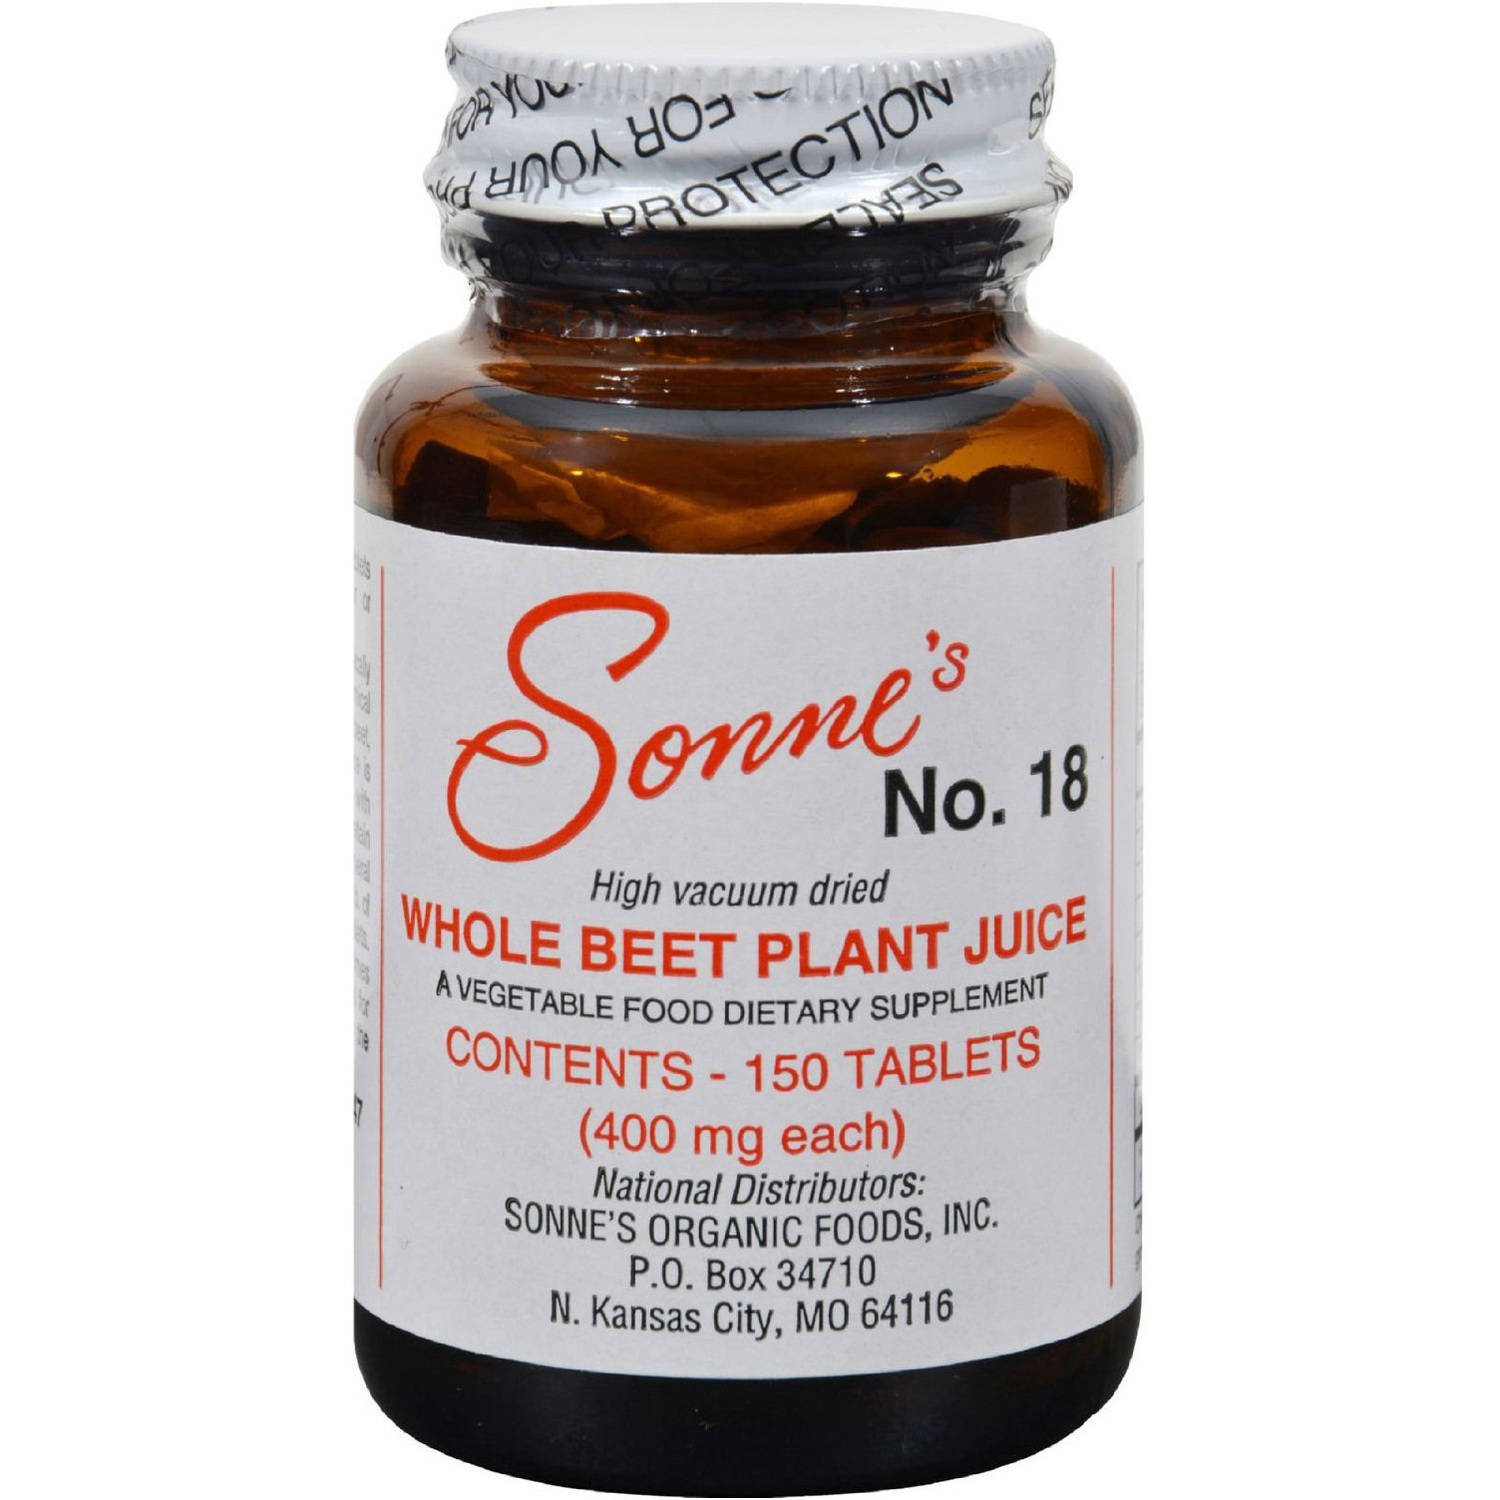 Sonne's Whole Beet Plant Juice, No. 18, 150 CT